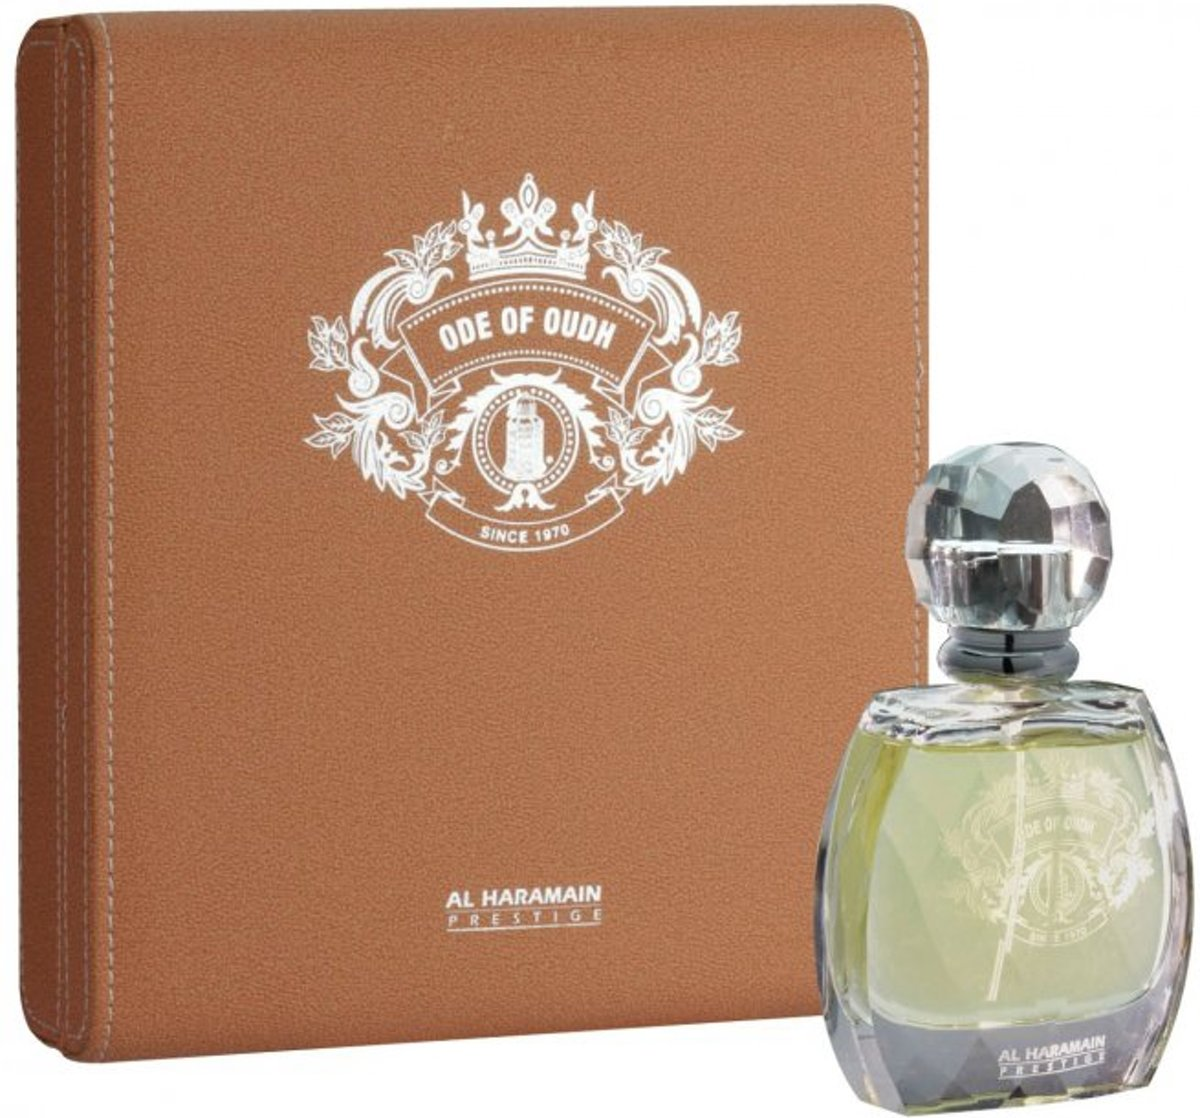 Al Haramain Ode of Oudh Eau de Parfum Spray 70 ml